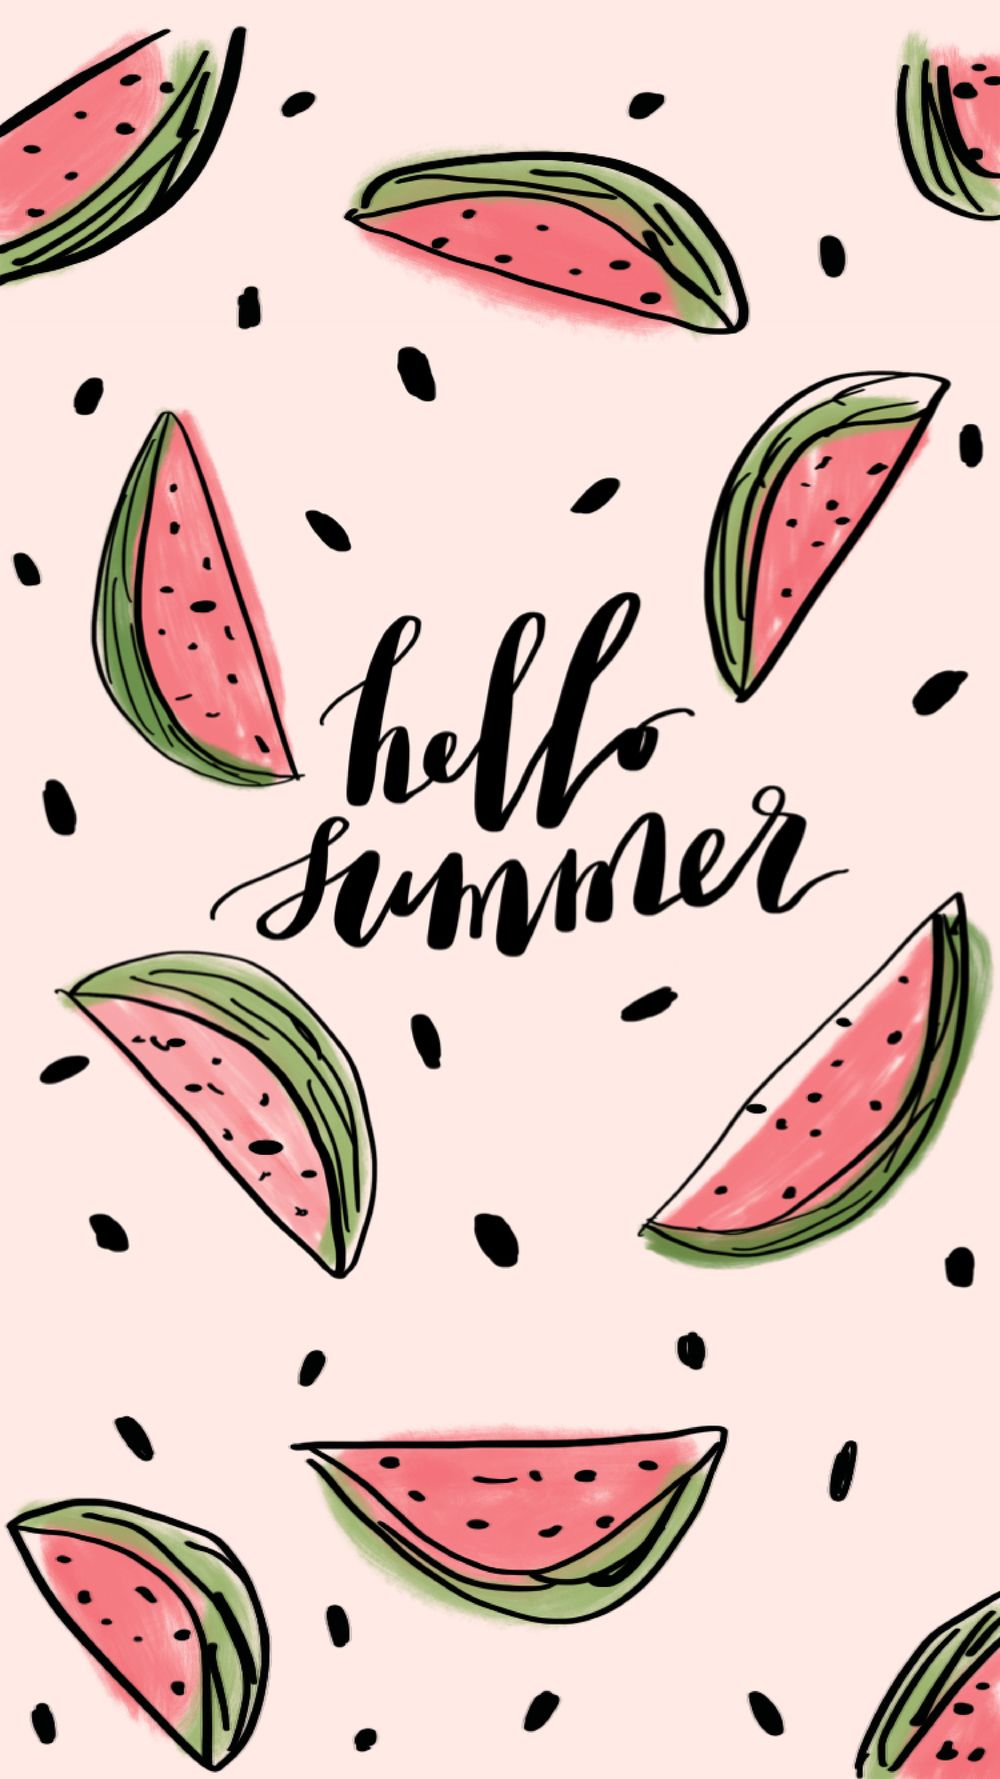 Hello Summer FREE Wallpaper iPhone stuff Watermelon wallpaper 1000x1779